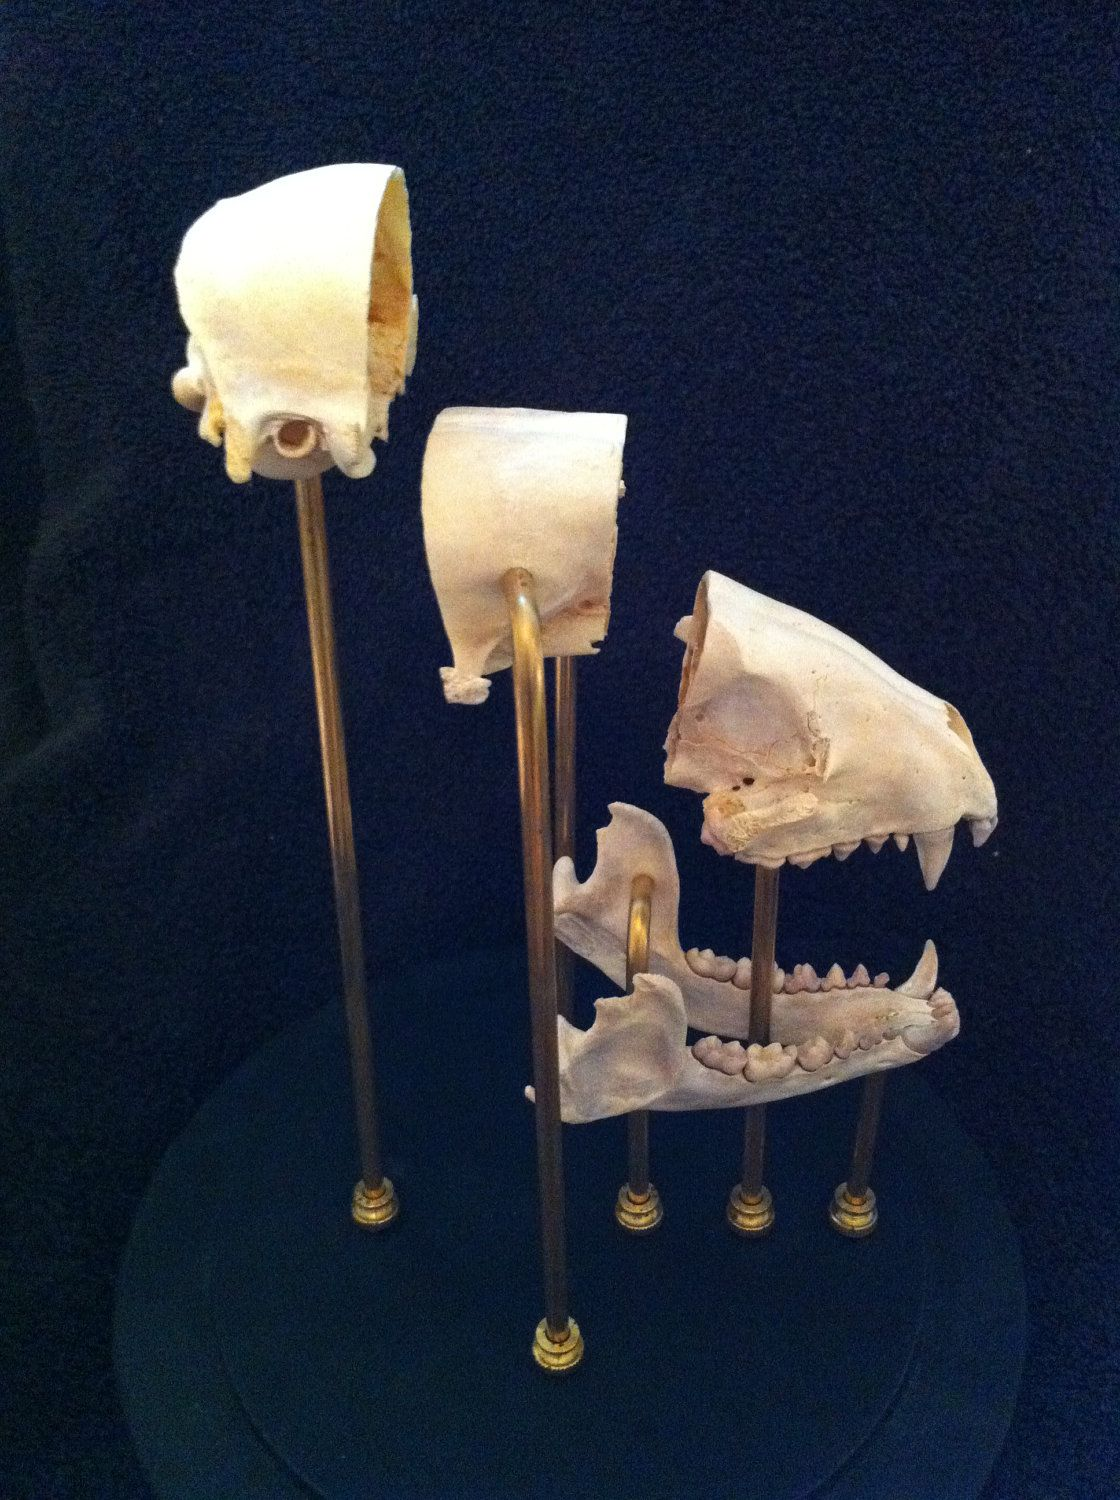 Dissected Raccoon Skull Glass Dome Mount Oddities Taxidermy. $275.00, via Etsy.